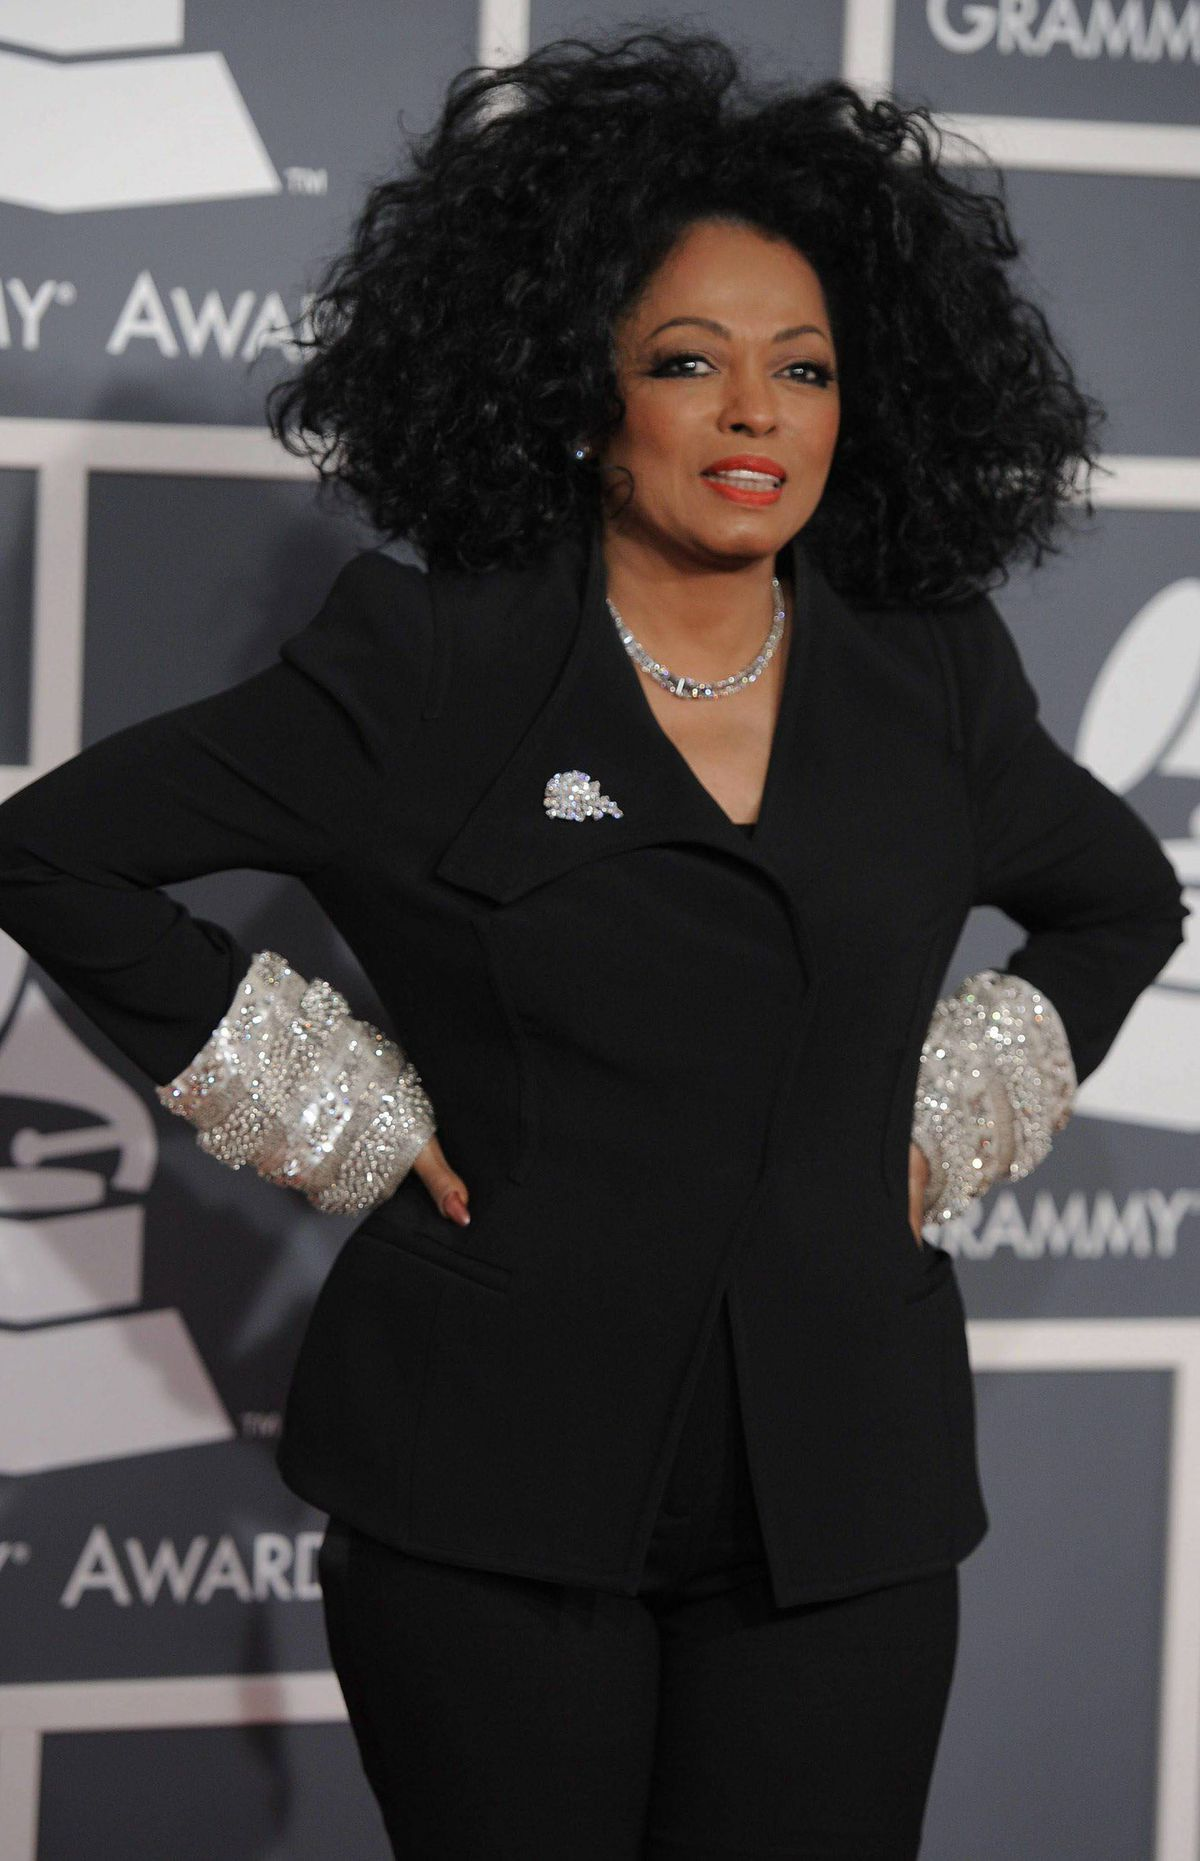 Diana Ross arrives at the 54th annual Grammy Awards on Sunday, Feb. 12, 2012 in Los Angeles.